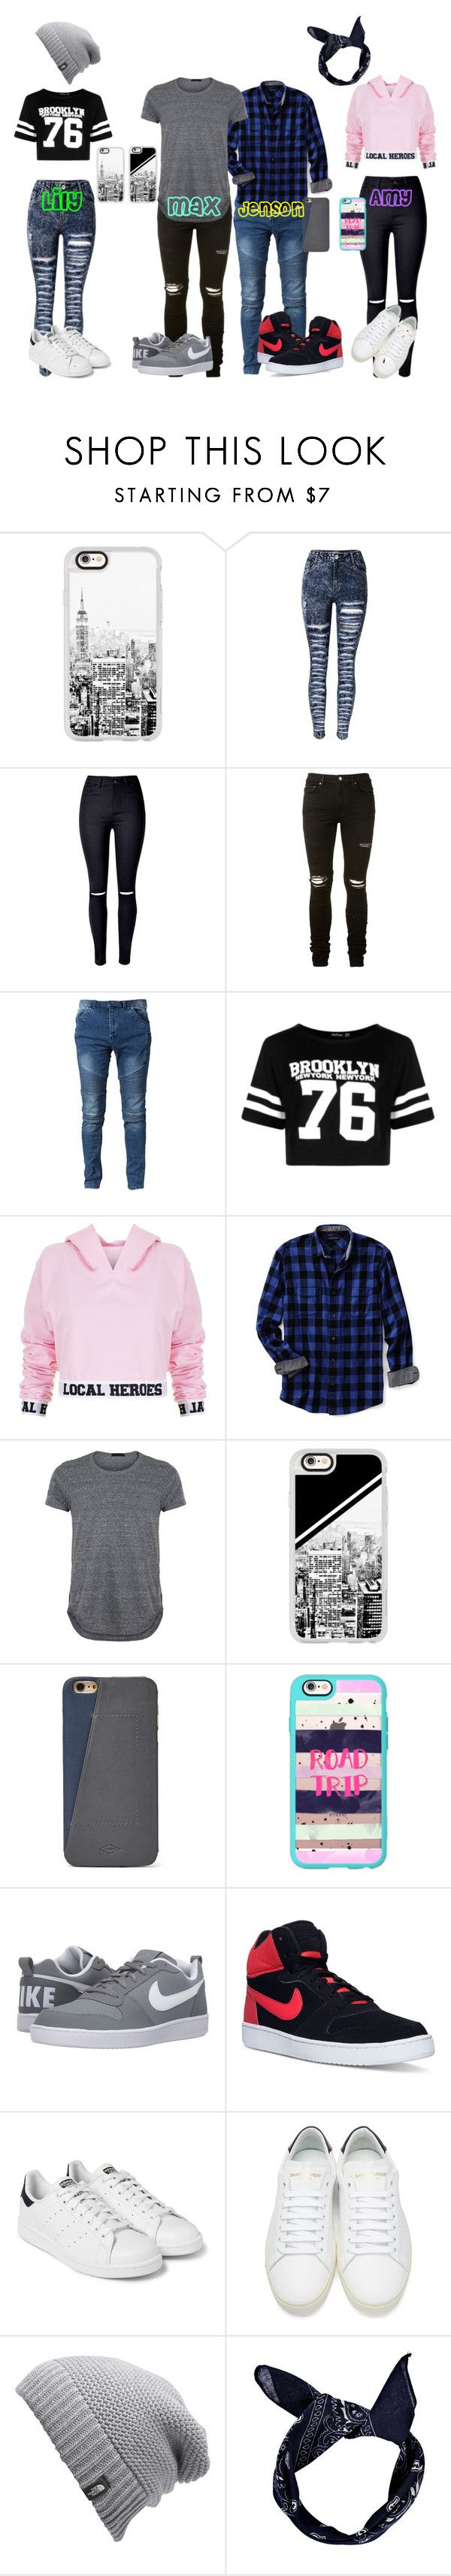 """""""Boyfriends Be Like"""" by poppylilyg ❤ liked on Polyvore featuring Casetify, AMIRI, Boohoo, Local Heroes, Lands' End, FOSSIL, NIKE, adidas Originals, Yves Saint Laurent and The North Face"""